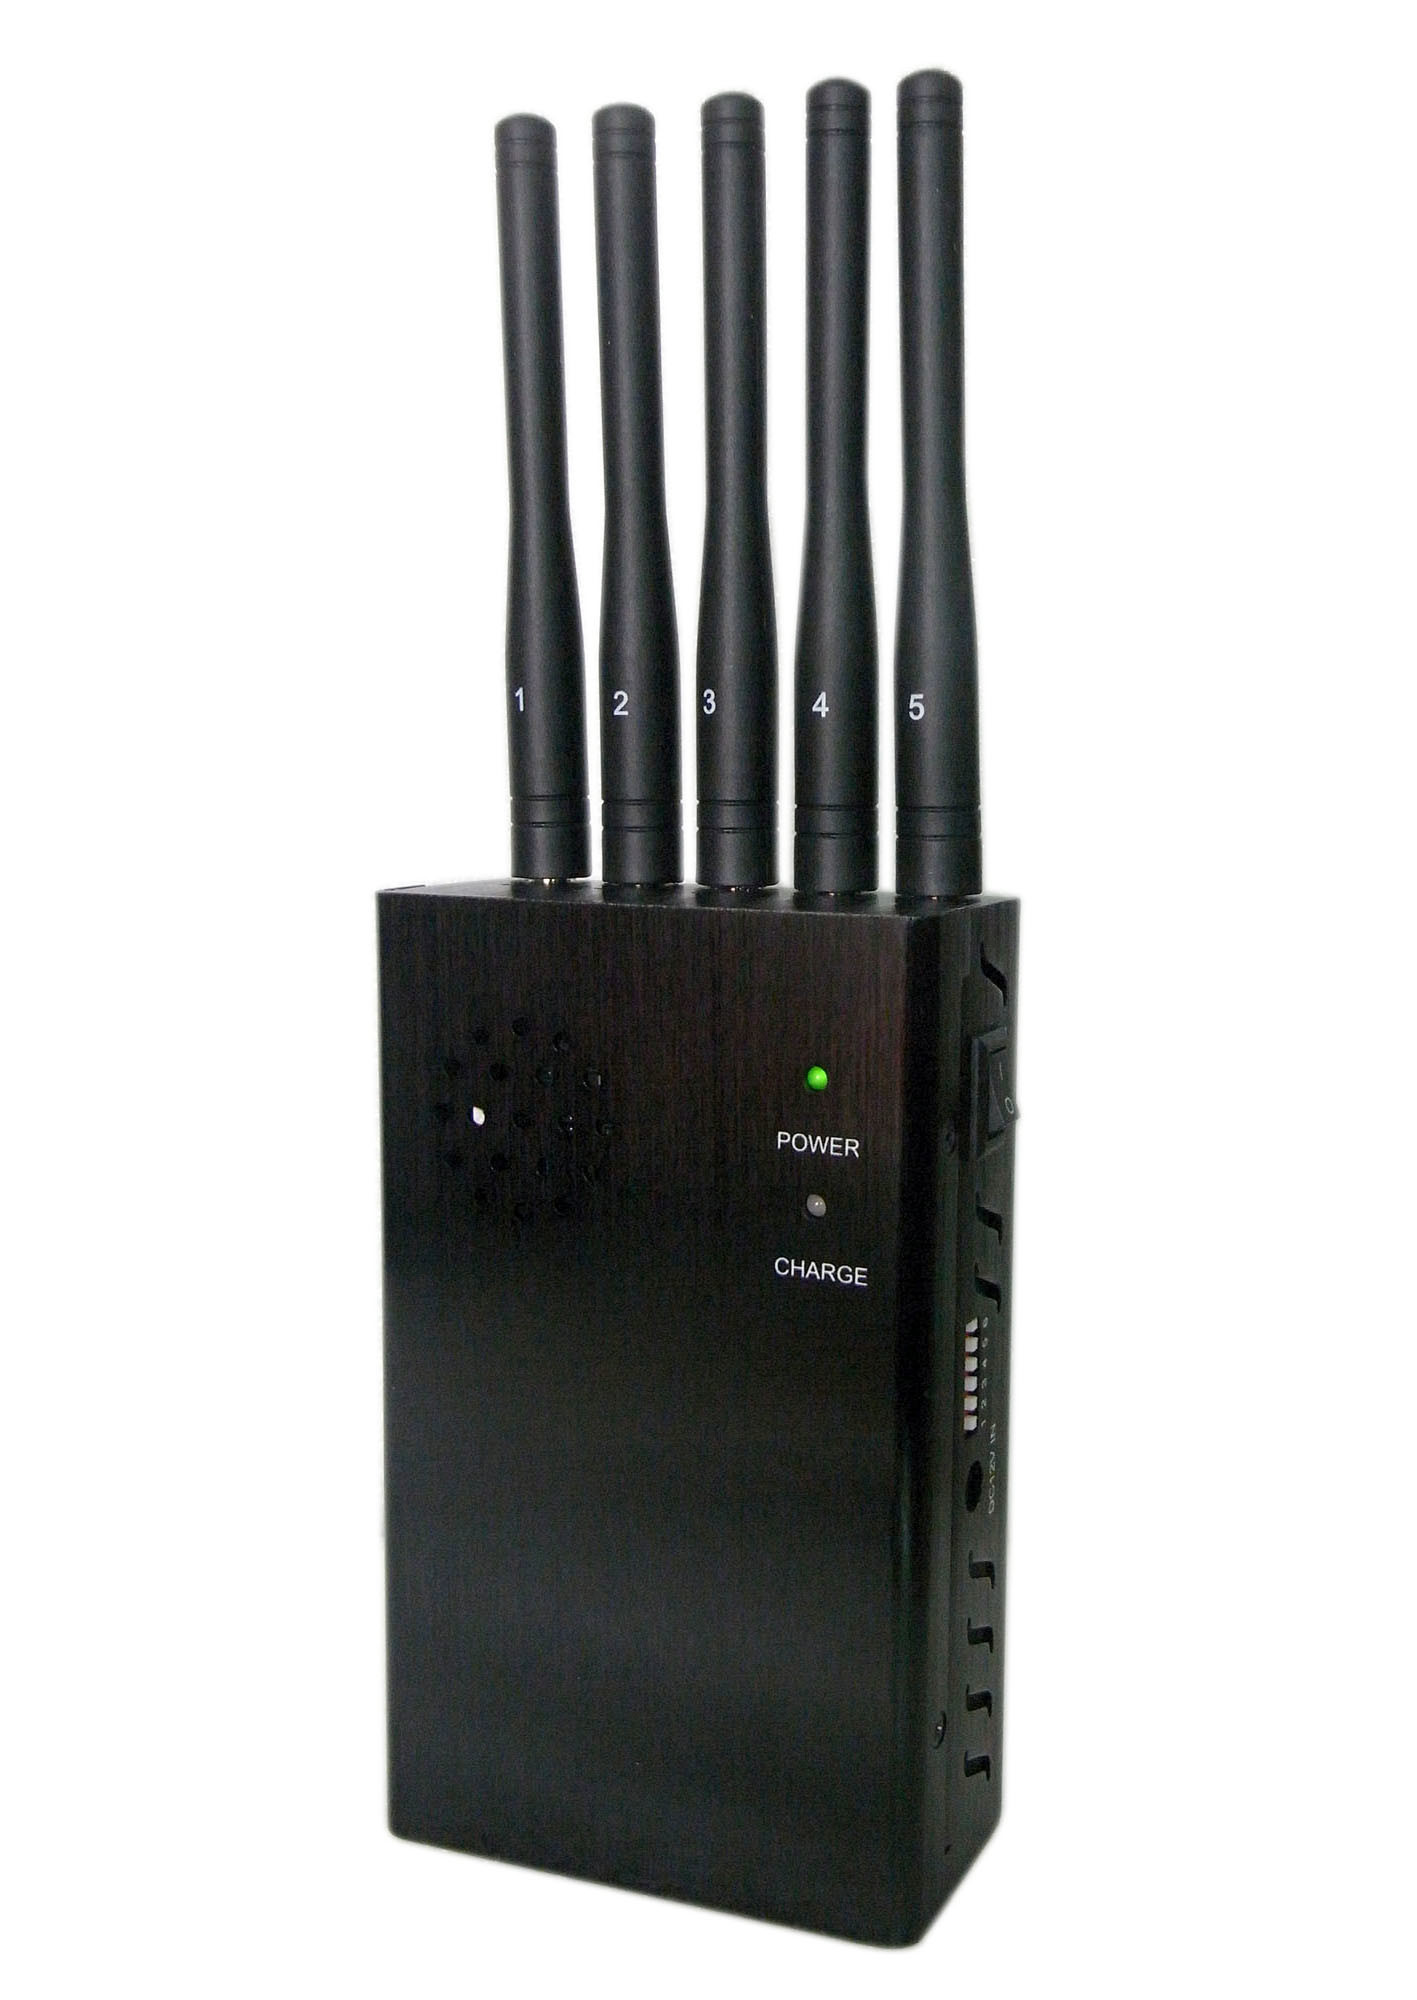 phone jammer range travel - China New 5 Powerful Antenna 3G 4glte Wimax Signal Jamers, Cell Phone + GPS + WiFi Jammer 5 Antennas - China 5 Band Signal Blockers, Five Antennas Jammers